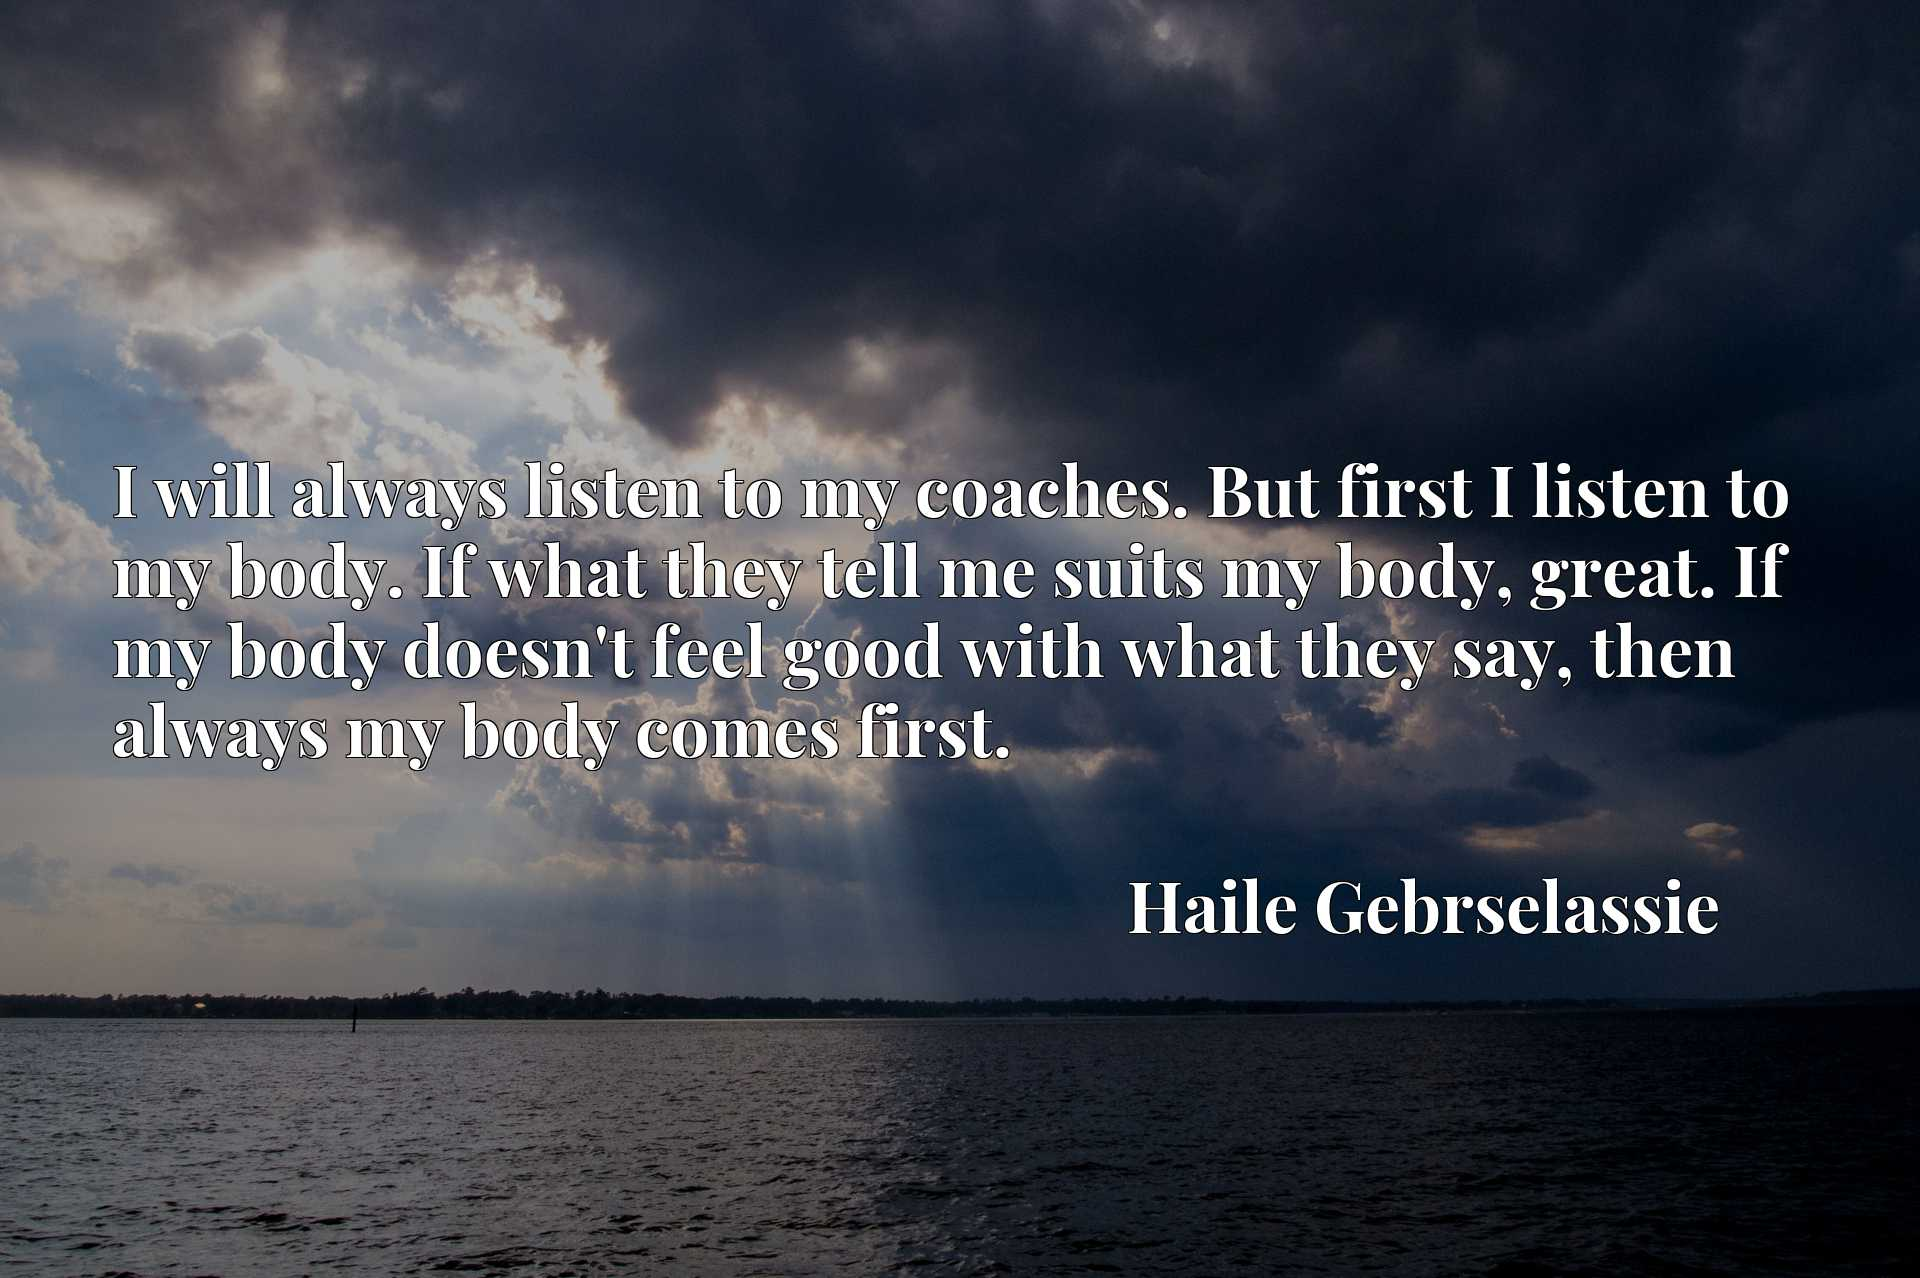 I will always listen to my coaches. But first I listen to my body. If what they tell me suits my body, great. If my body doesn't feel good with what they say, then always my body comes first.